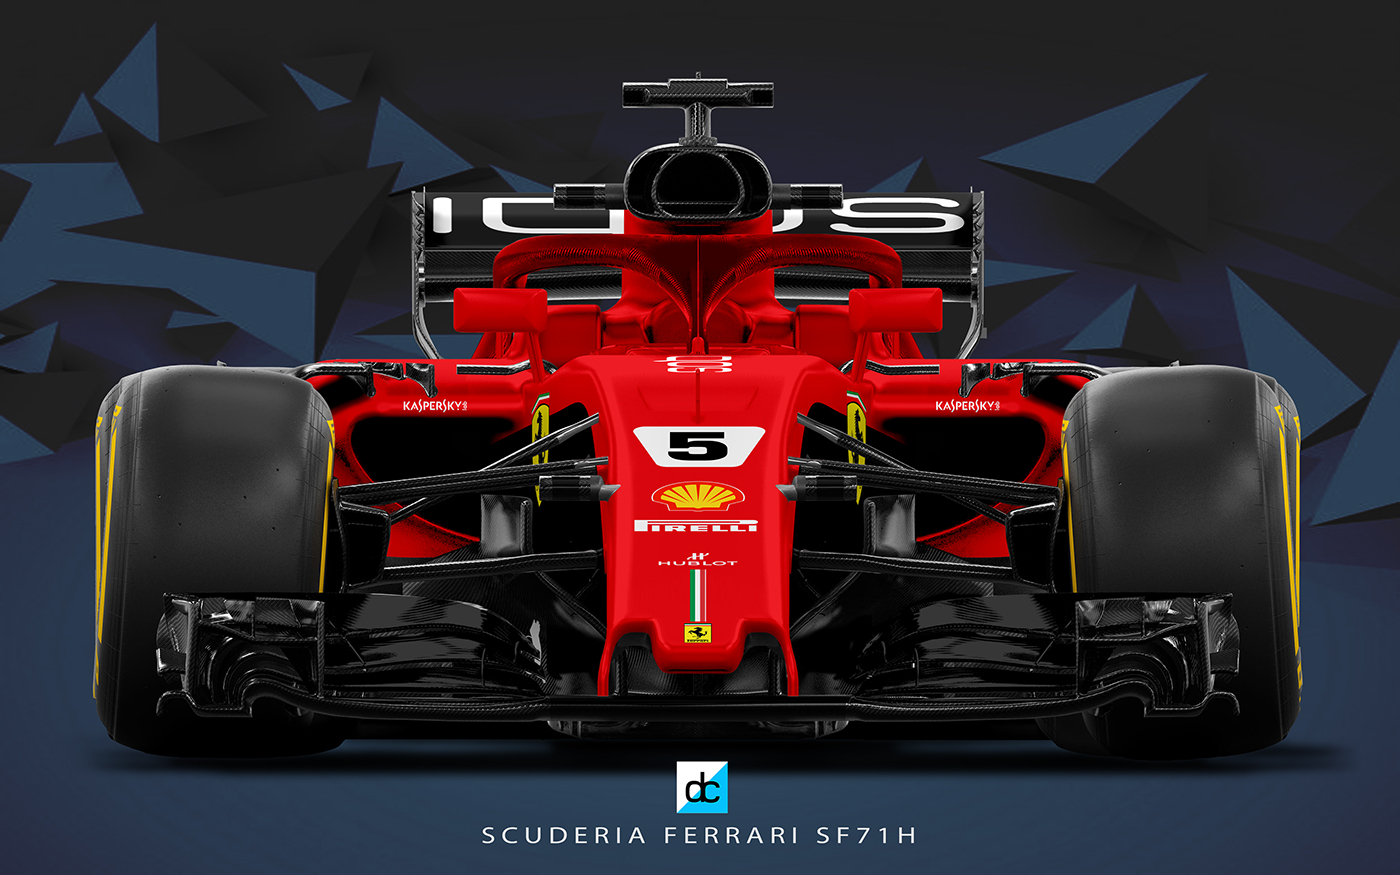 2018 scuderia ferrari f1 concept liveries on behance. Black Bedroom Furniture Sets. Home Design Ideas